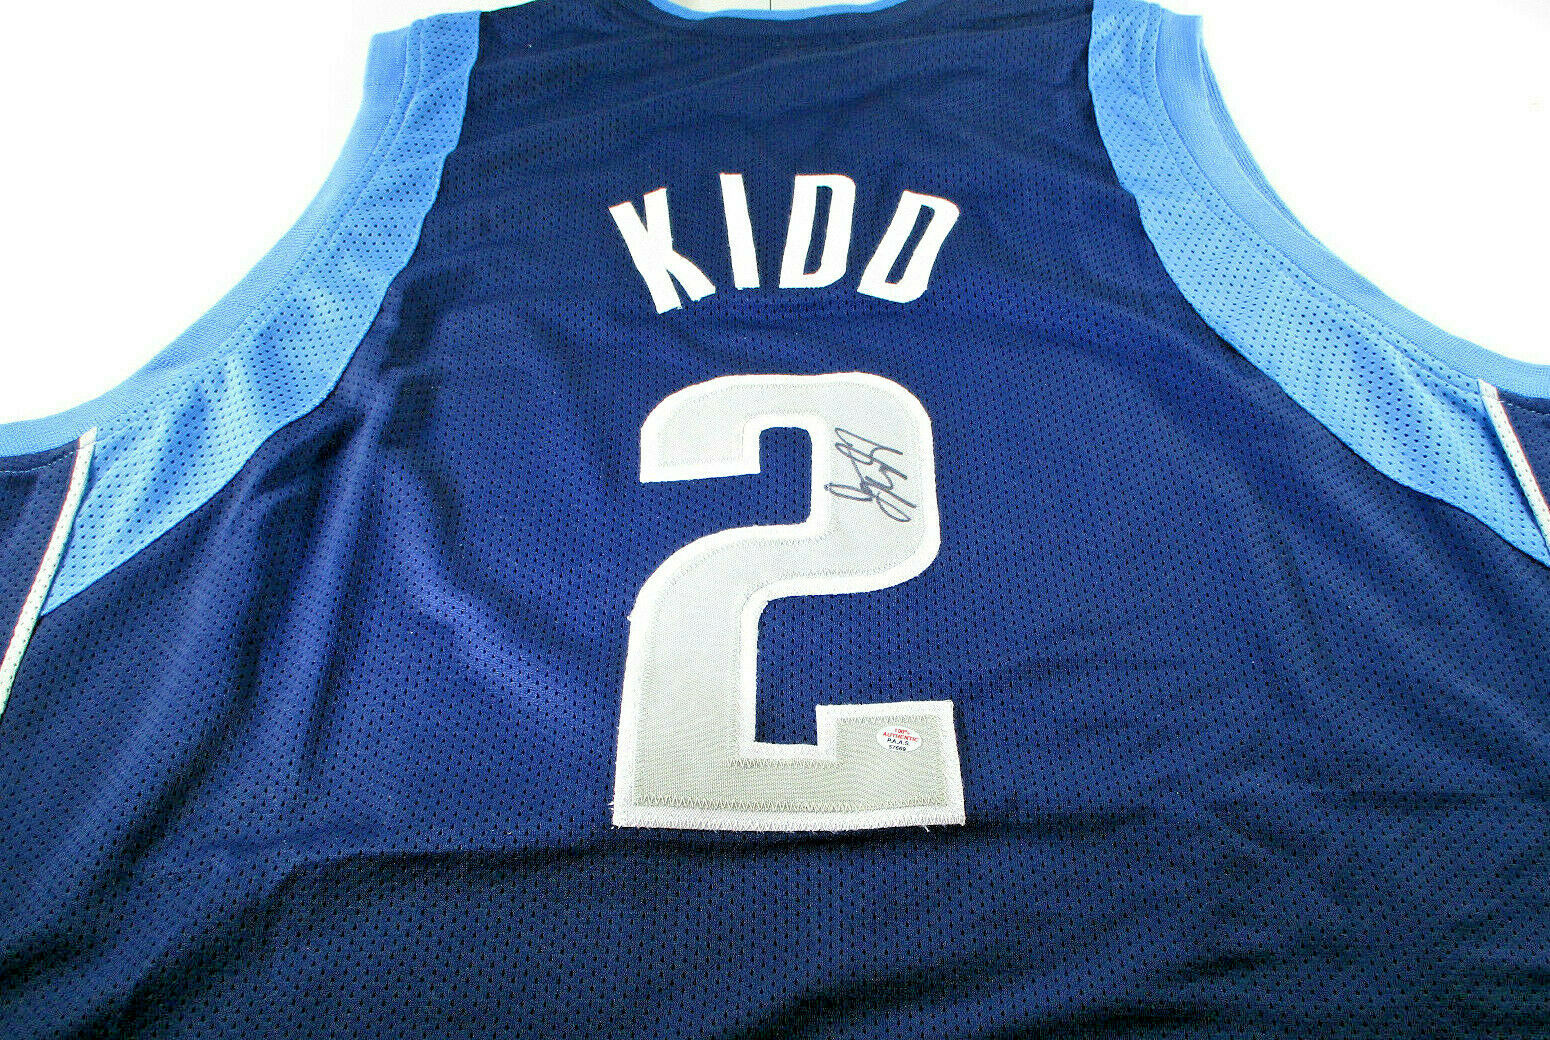 JASON KIDD / NBA HALL OF FAME / AUTOGRAPHED DALLAS MAVERICKS CUSTOM JERSEY / COA